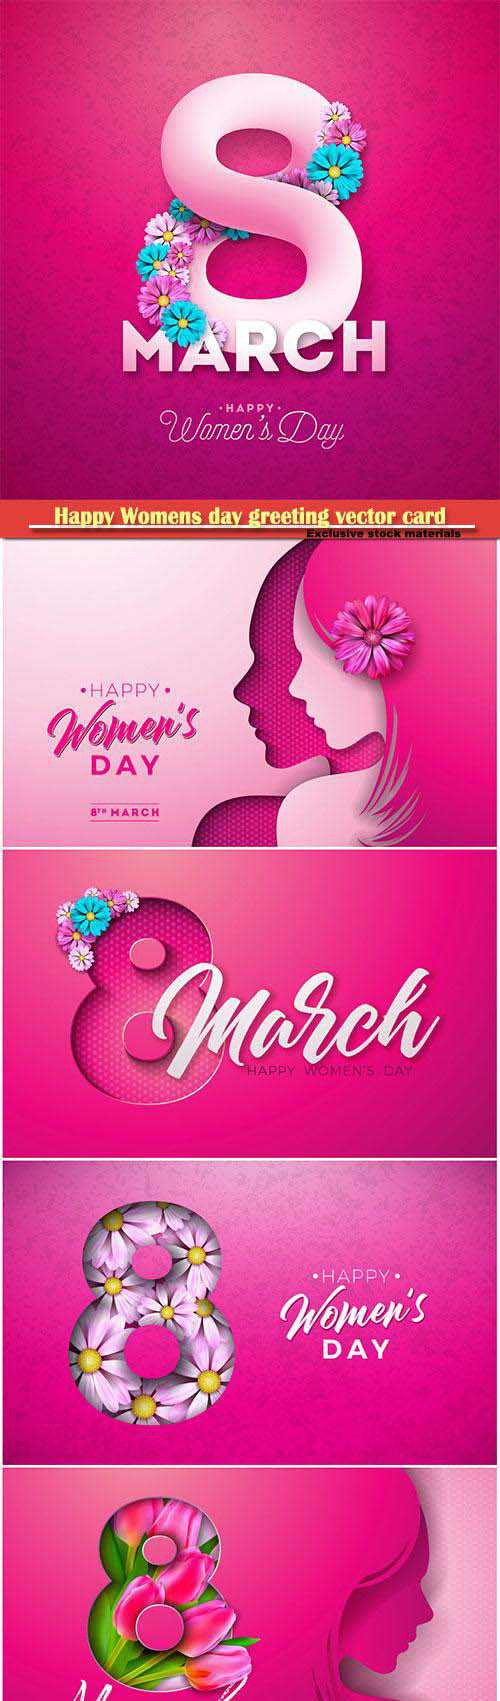 Happy Womens day floral greeting vector card design # 2